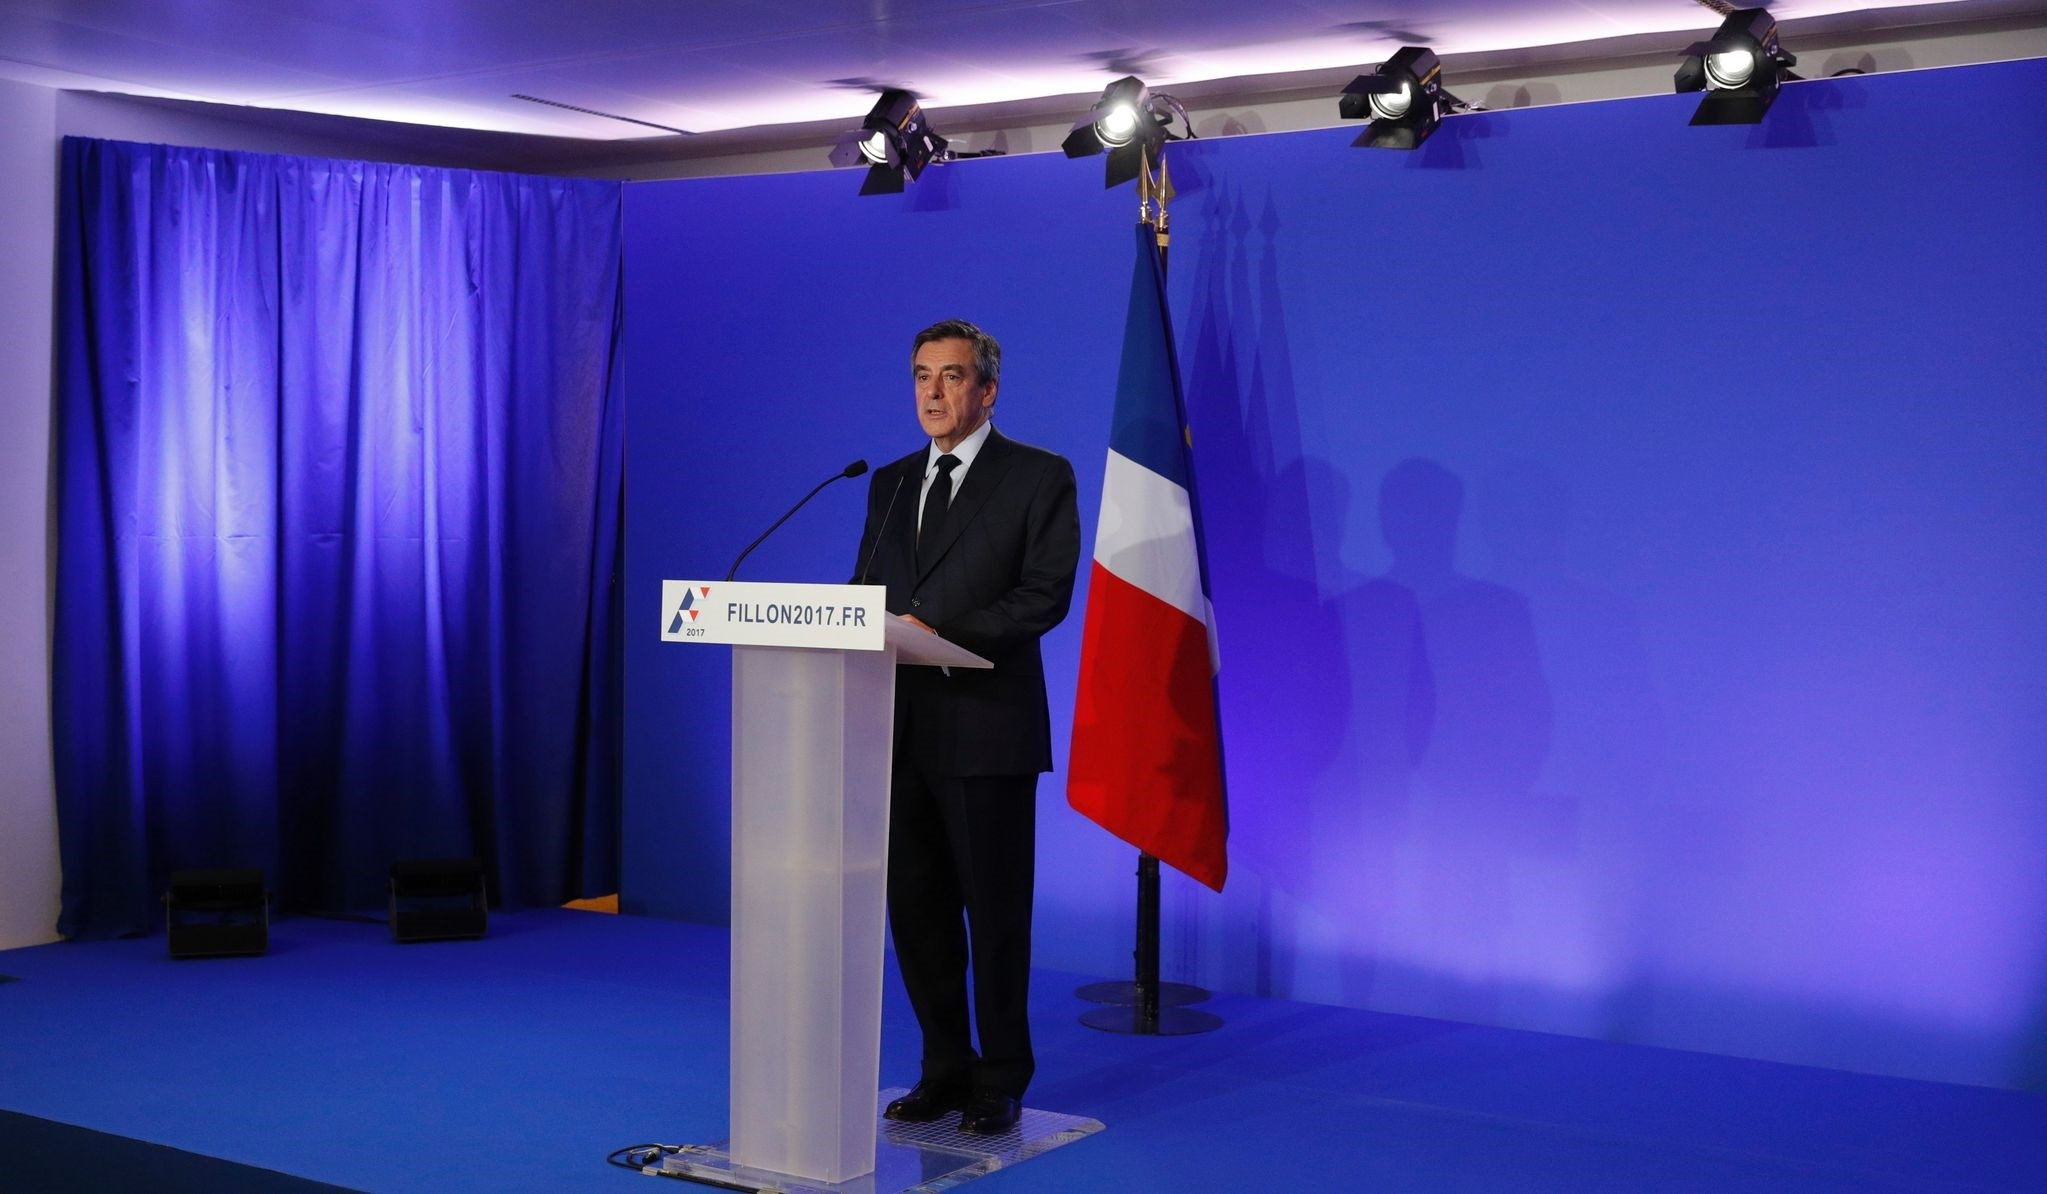 Francois Fillon speaks during a press conference focused on ,fake job, allegations, on February 6, 2017. (AFP Photo)